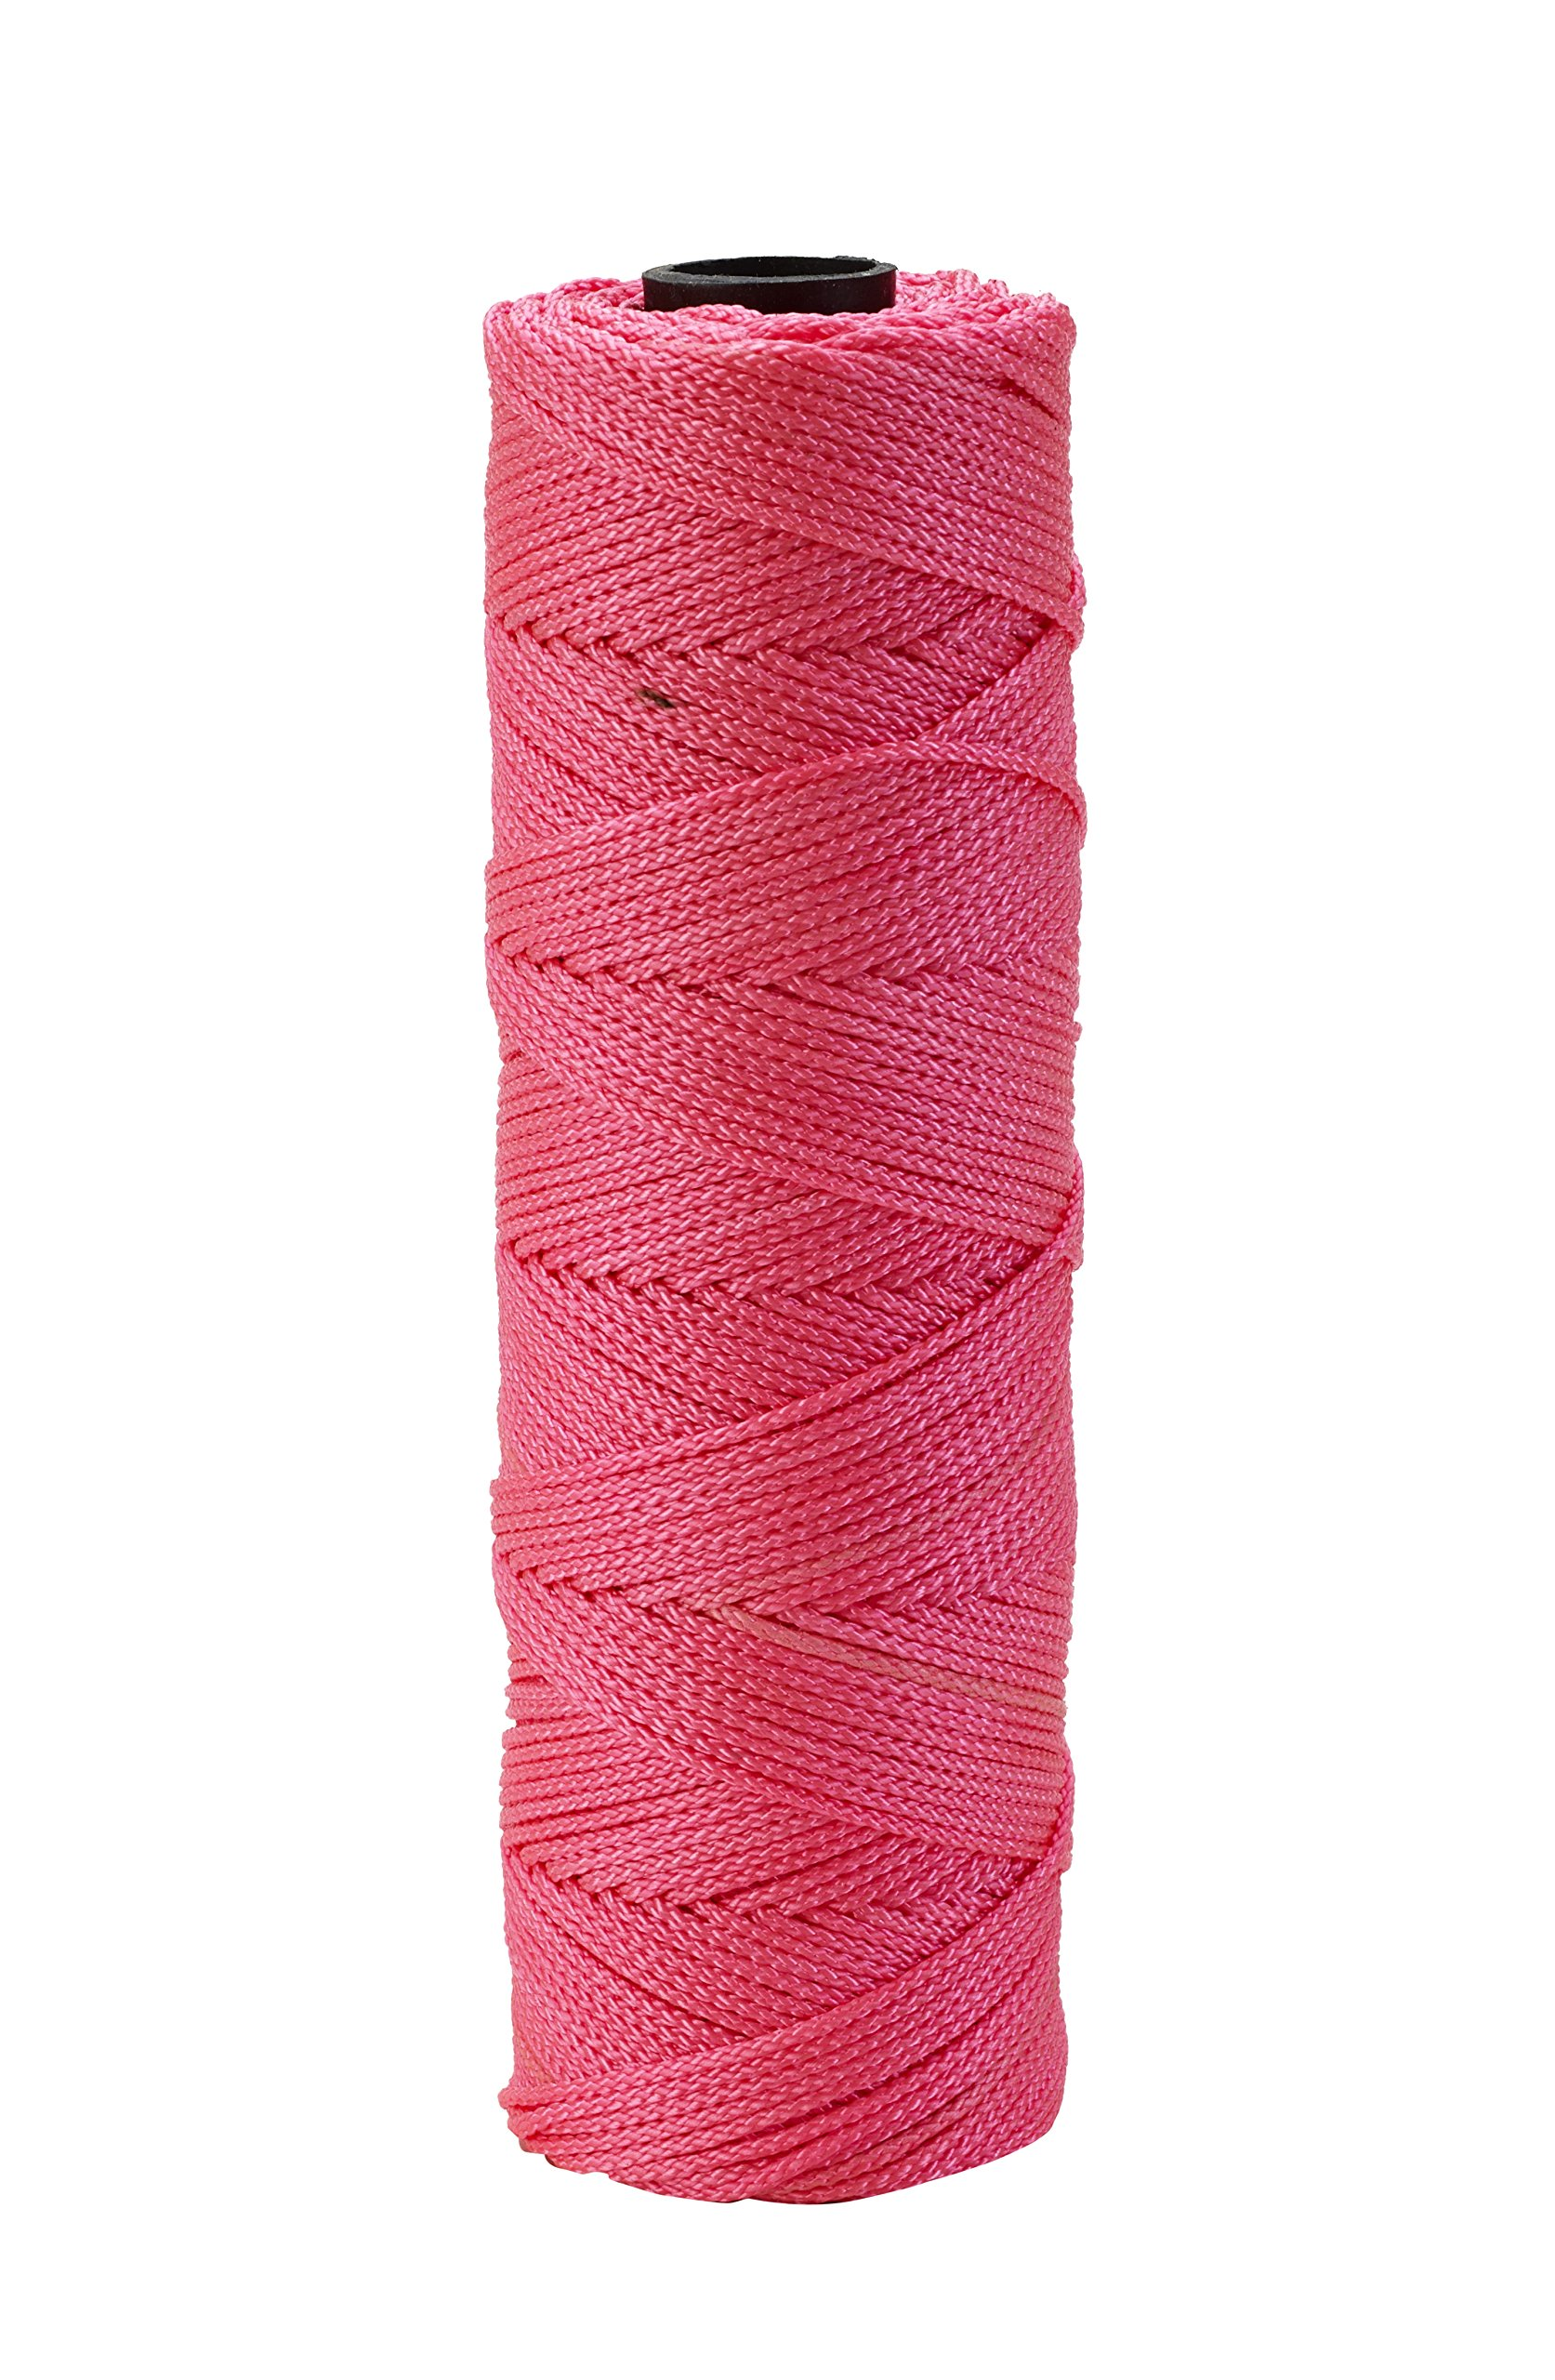 Mutual Industries 14661-175-275 Nylon Mason Twine, 1/4 lb. Twisted, 18 x 275', Glo Pink (Pack of 6)